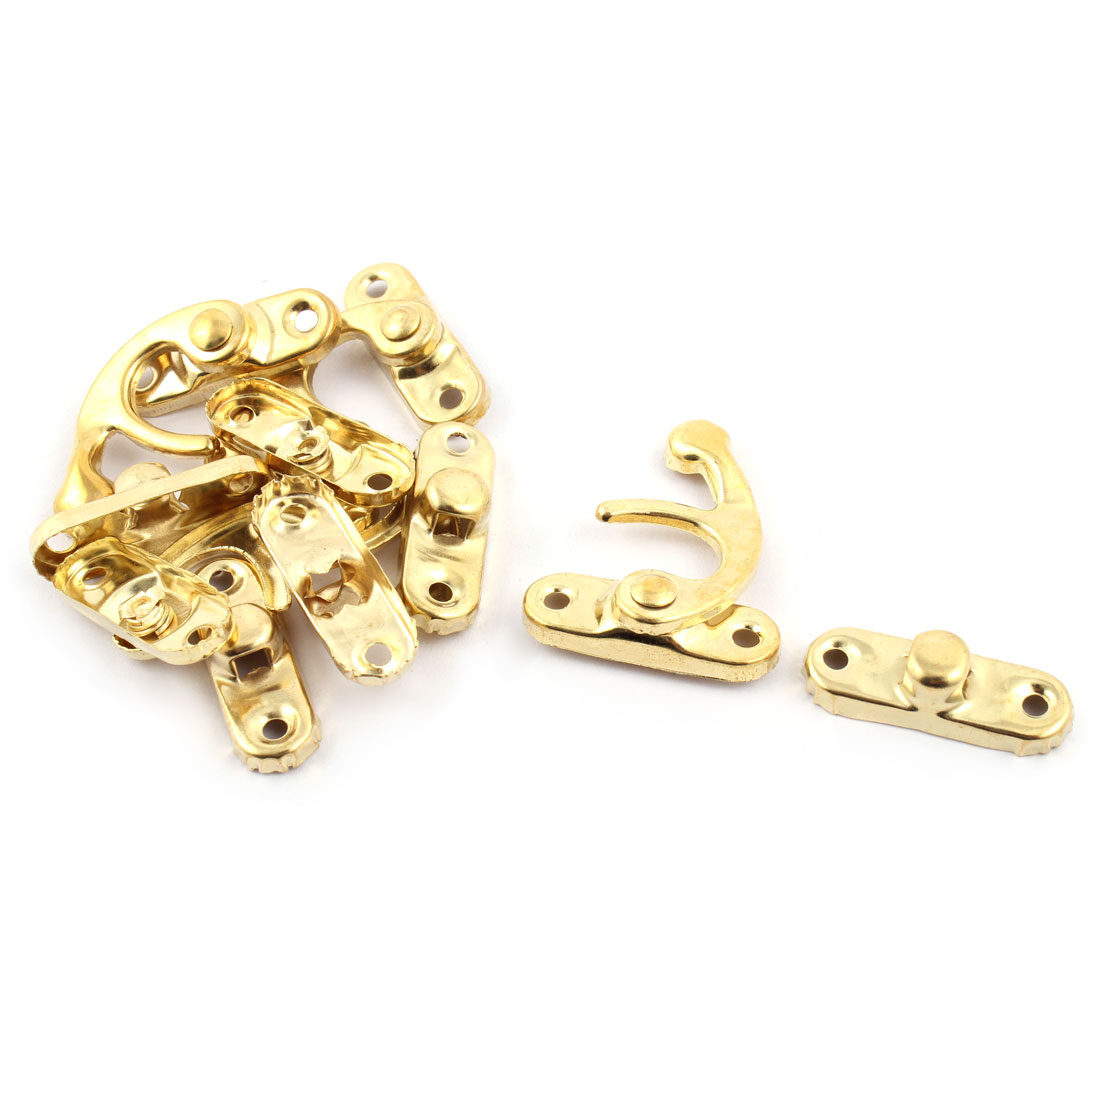 Home Metal Swing Bag Chest Hasp Box Latch Hook Lock Gold Tone 5 Sets